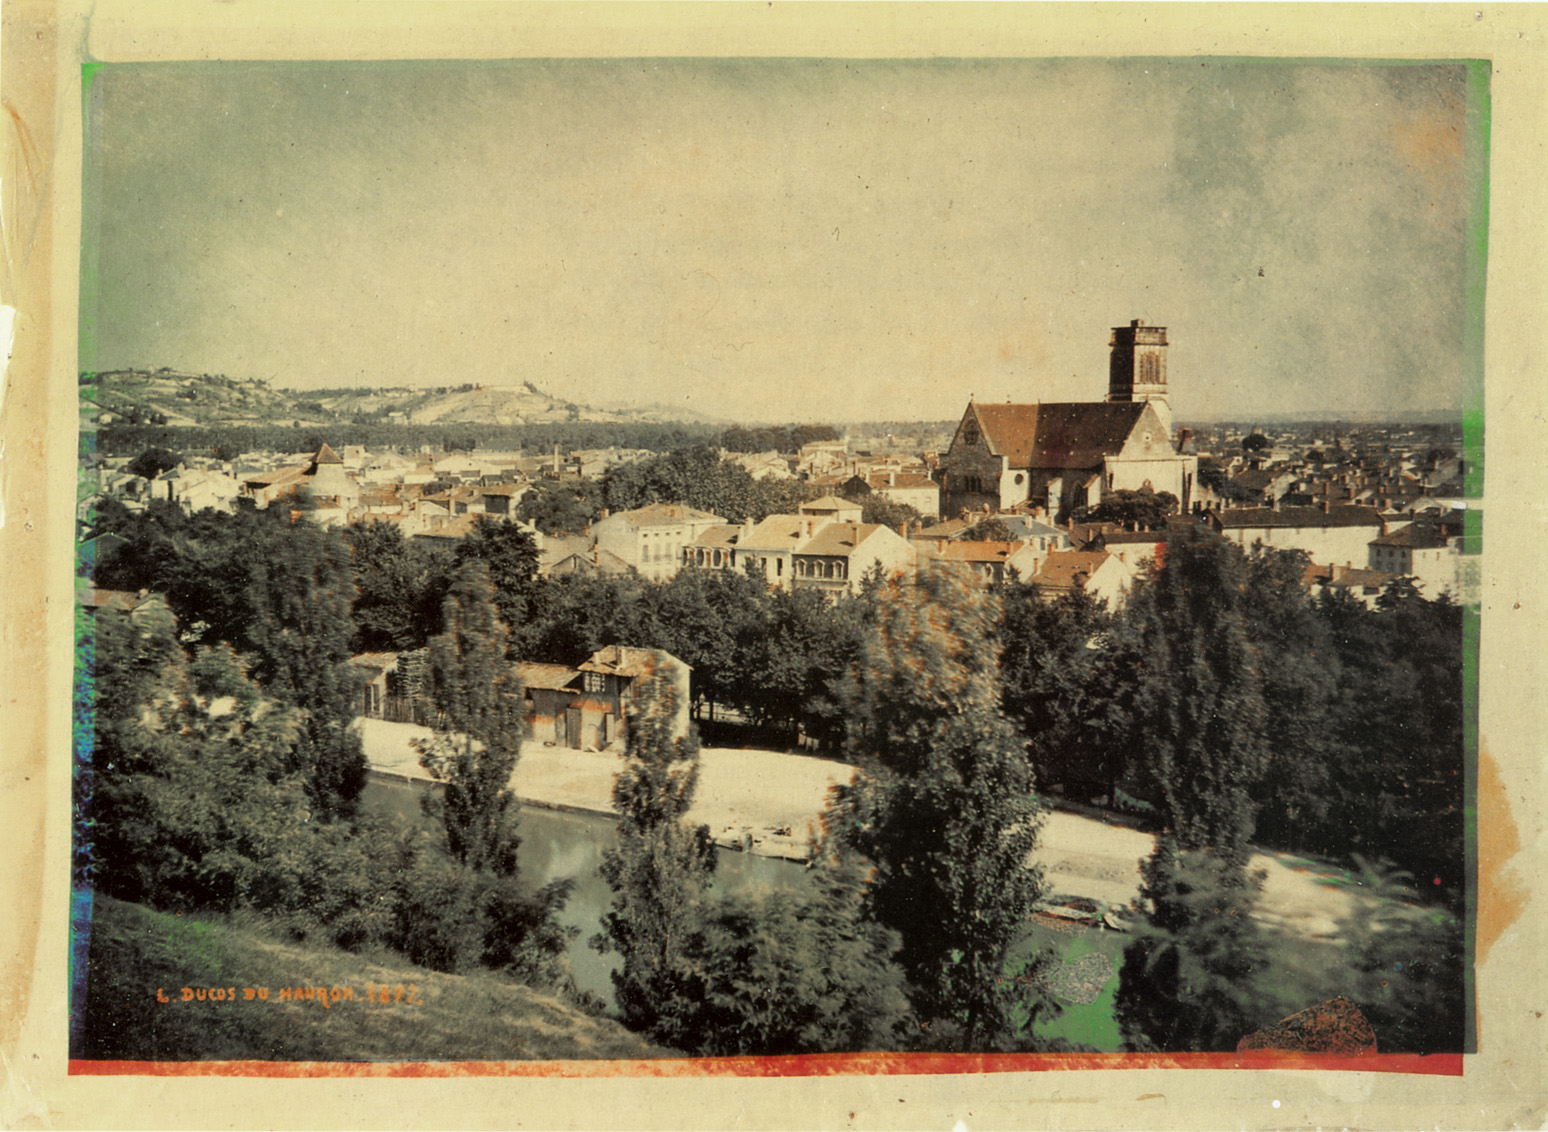 An 1877 Color Photographic Print On Paper By Louis Ducos Du Hauron The Foremost Early French Pioneer Of Photography Overlapping Yellow Cyan And